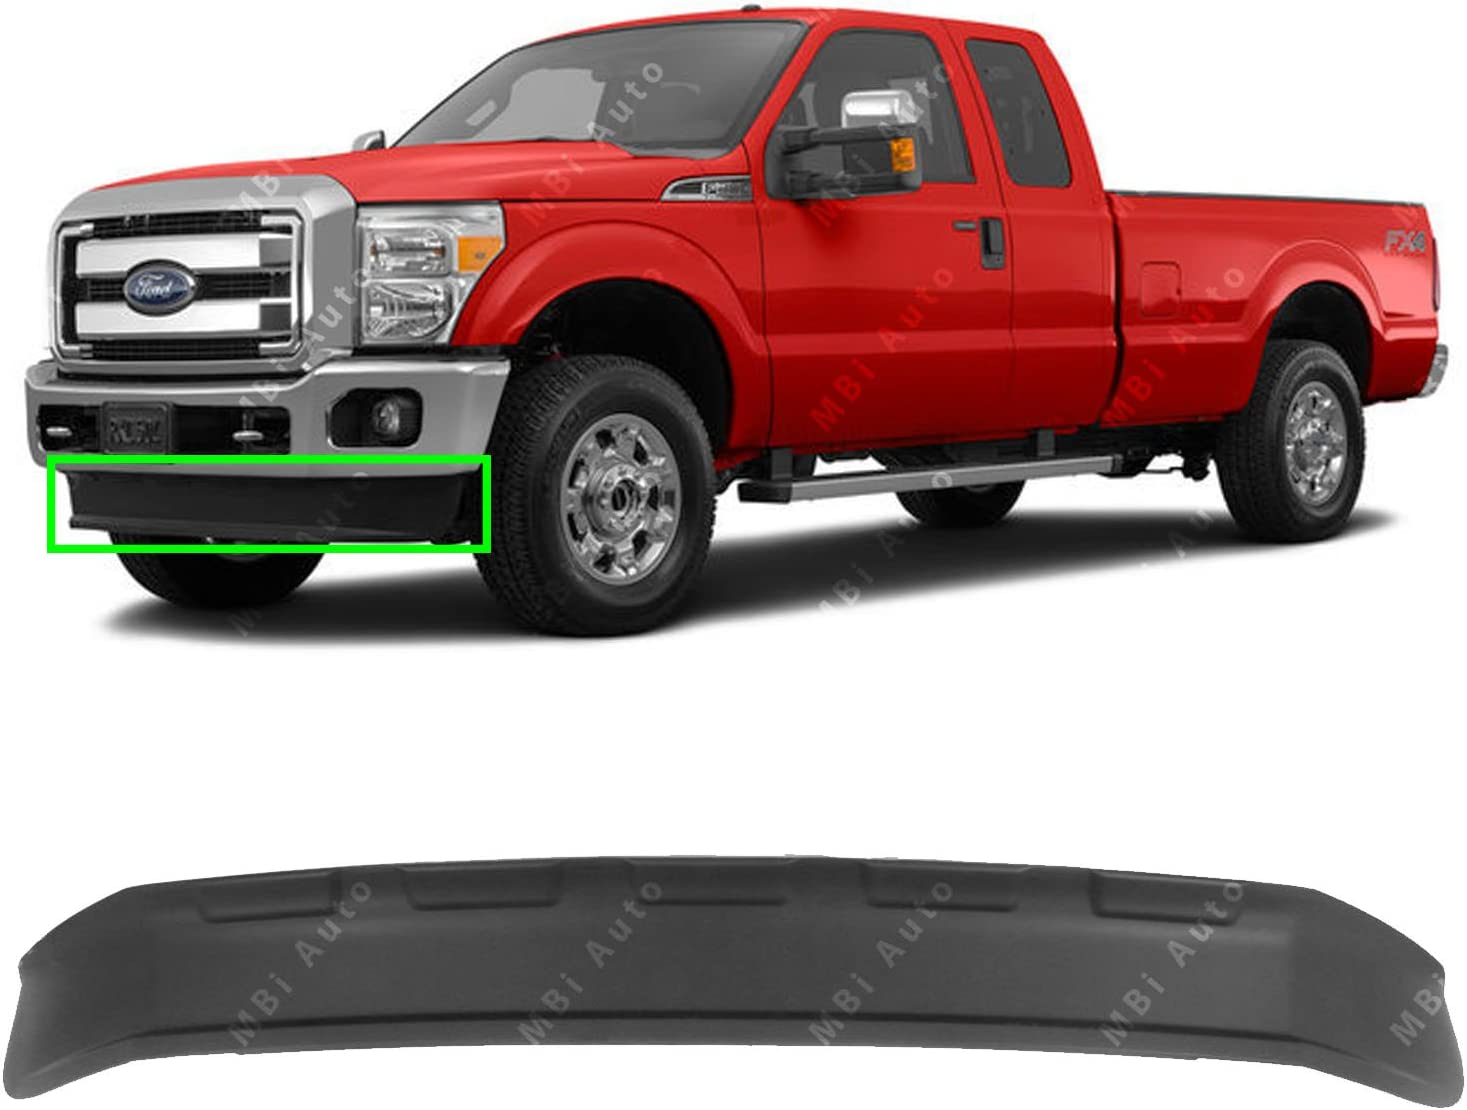 2016 Ford F350 >> Mbi Auto Front Bumper Lower Valance Air Deflector For 2011 2016 Ford F250 F350 Super Duty 4x4 11 16 Fo1095242